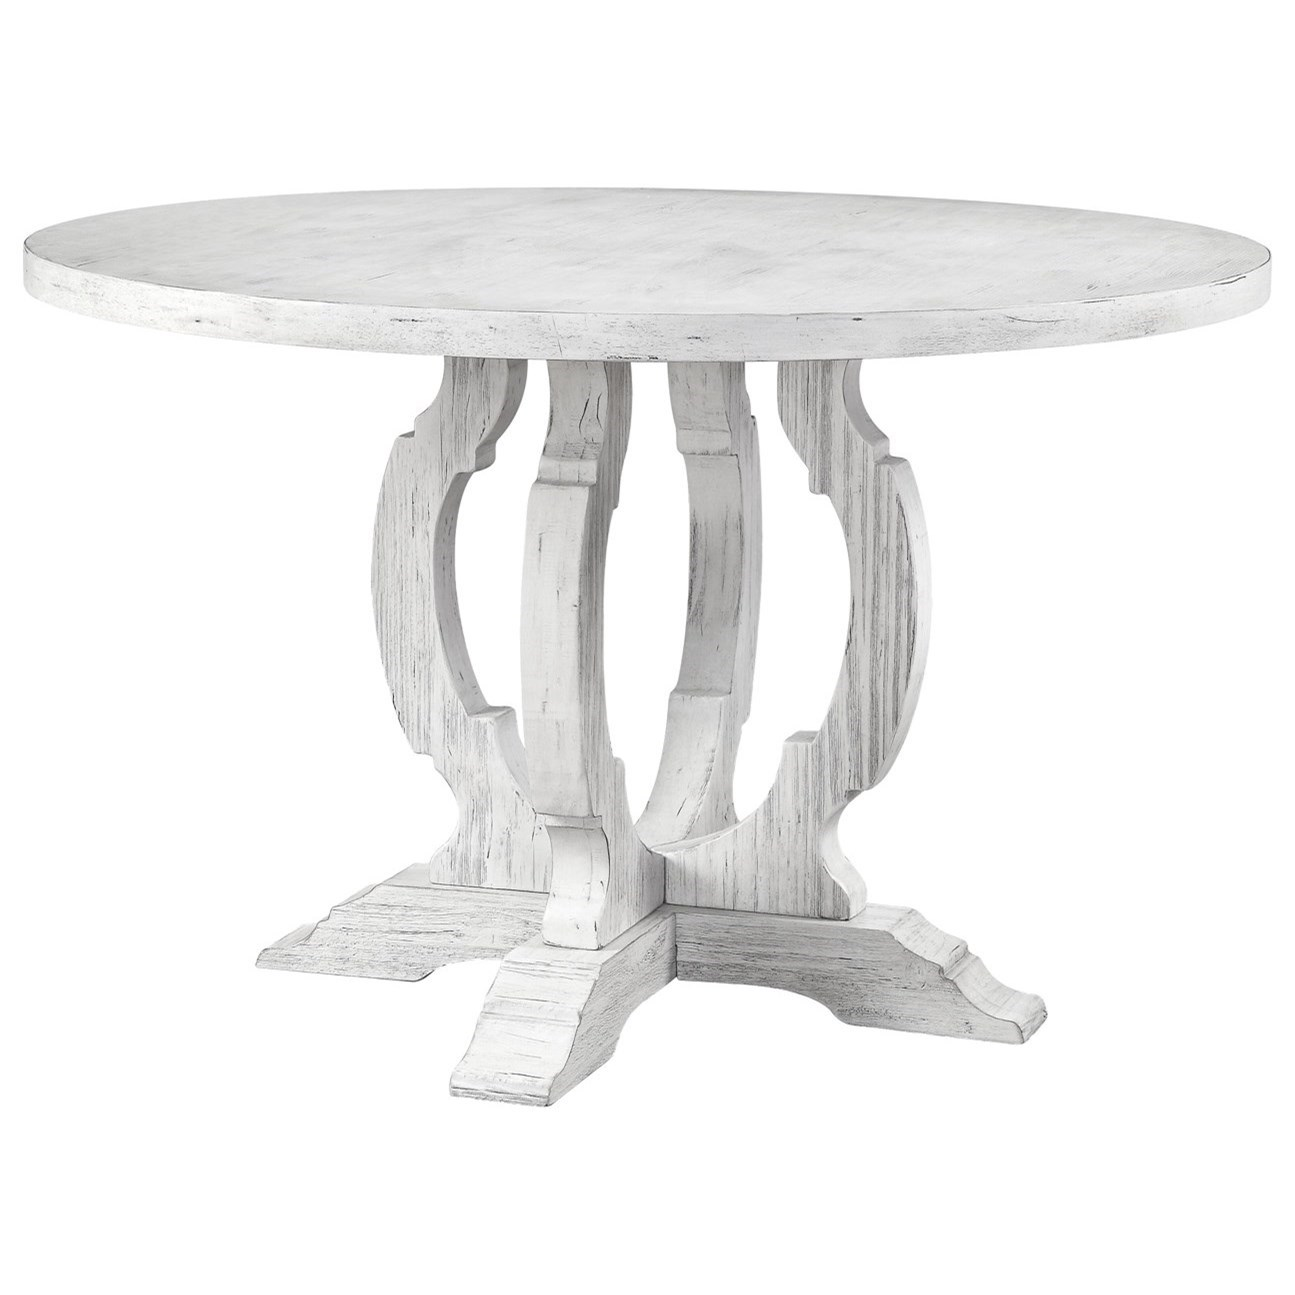 Orchard Park Round Dining Table by C2C at Walker's Furniture